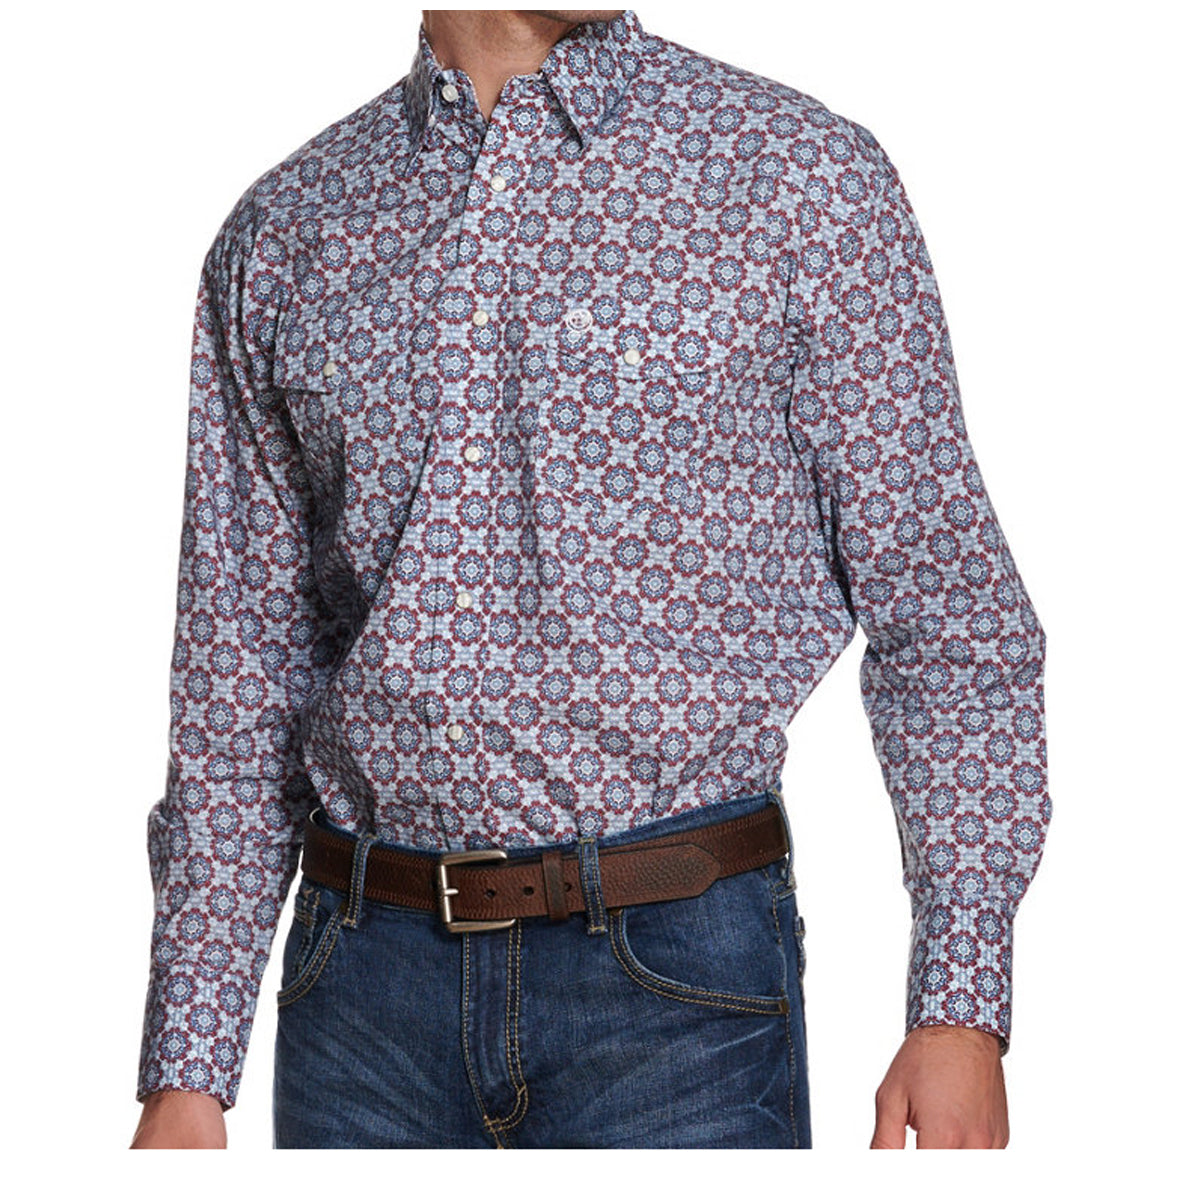 Wrangler Men's George Strait Troubadour Western Snap Print Long Sleeve Shirt - Multi